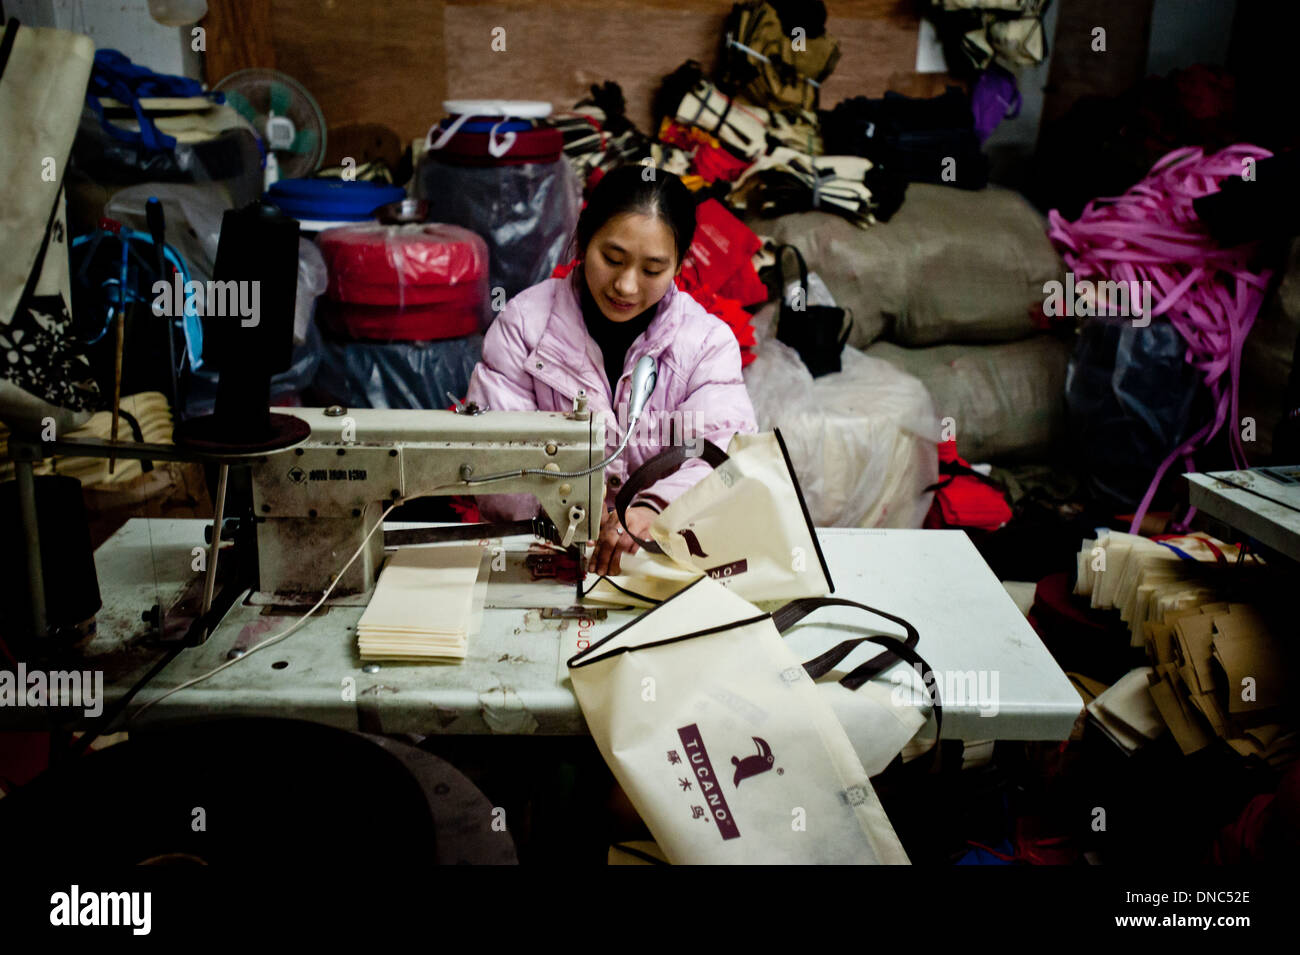 Chongqing, China - 31 December 2010: a chinese woman sews parts of a bag on a sewing machine in a textile factory. - Stock Image